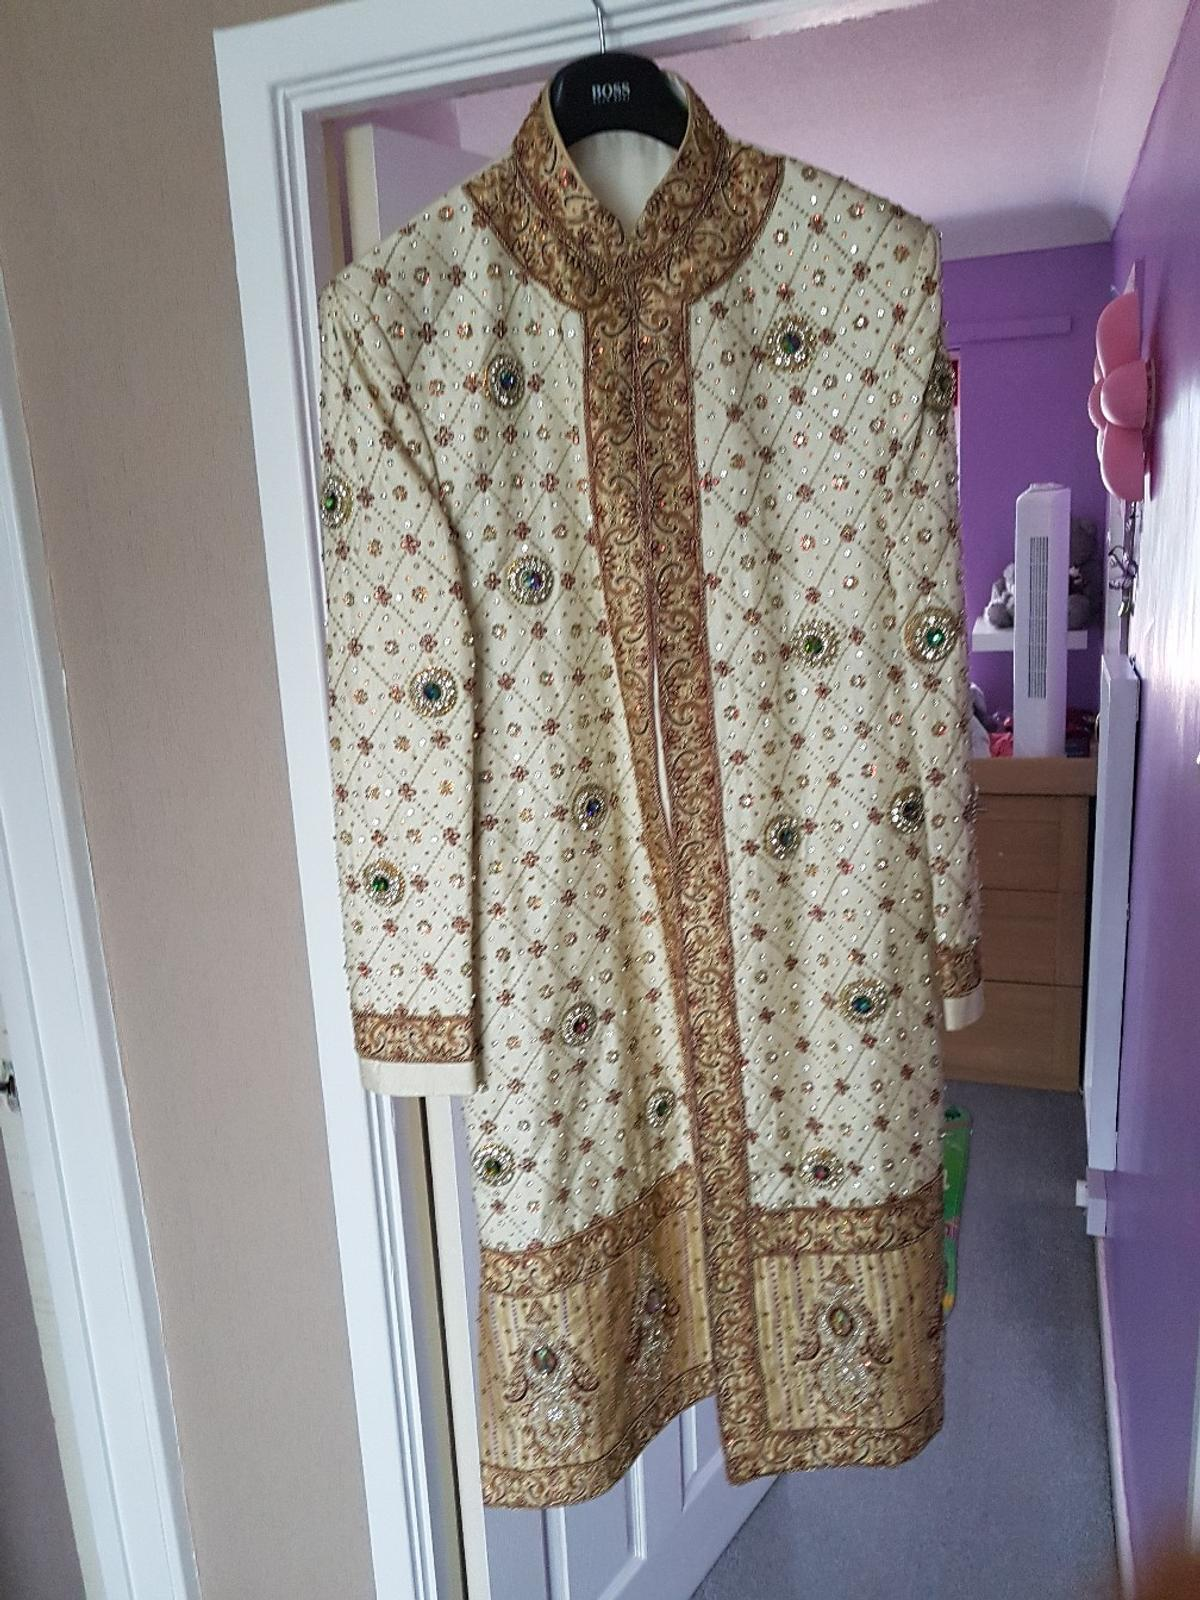 heavy wedding shirvani in B68 Sandwell for £100.00 for sale   Shpock